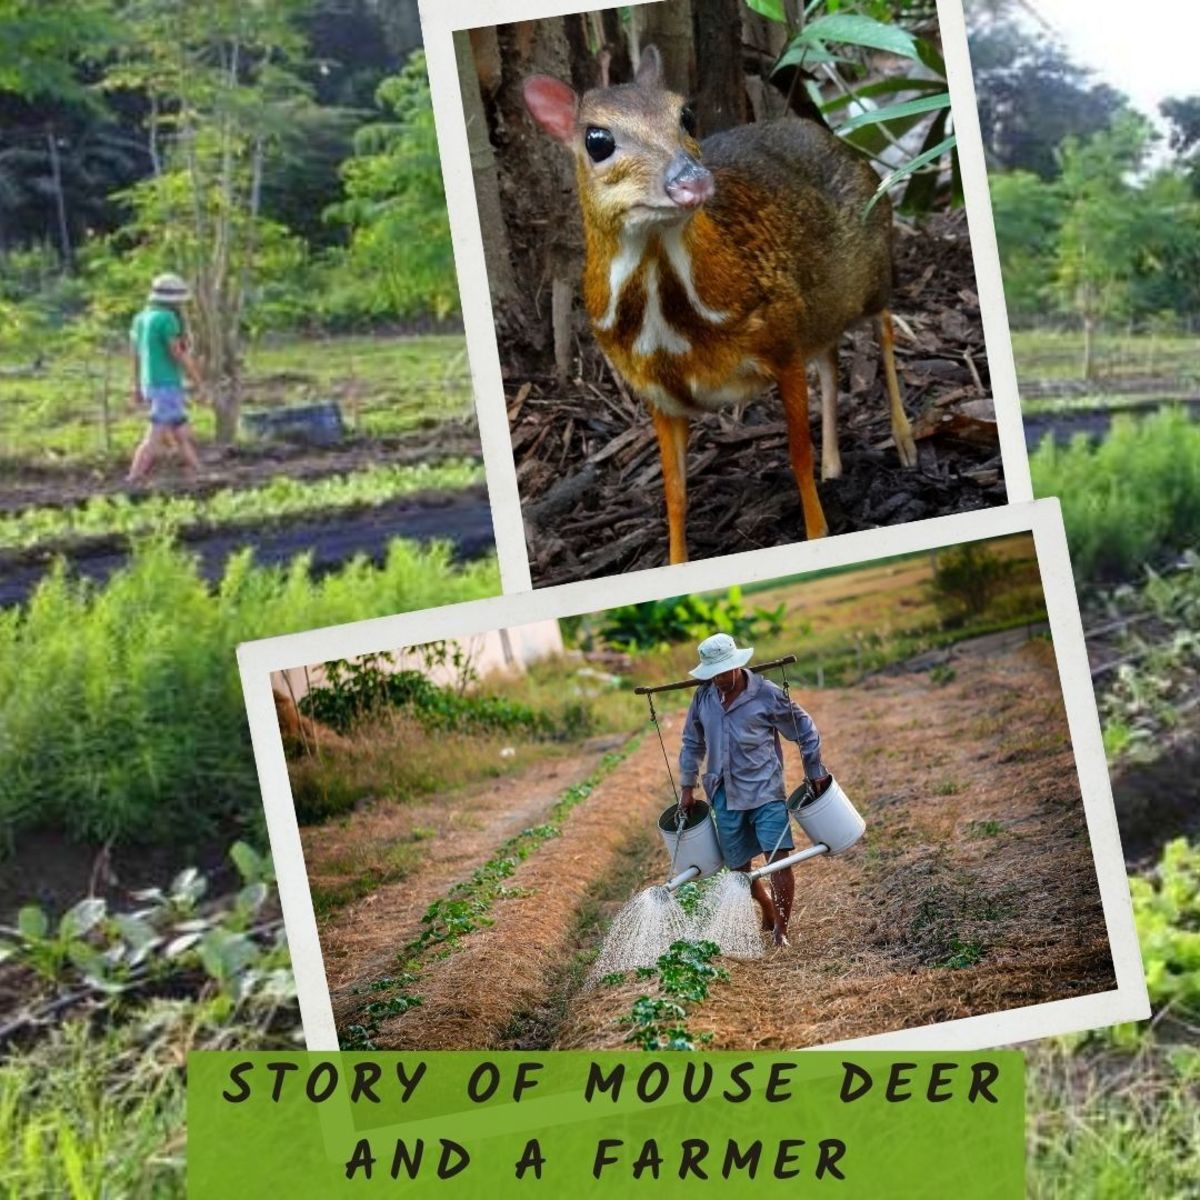 Children Bedtime Story - Story of Mouse Deer and a Farmer